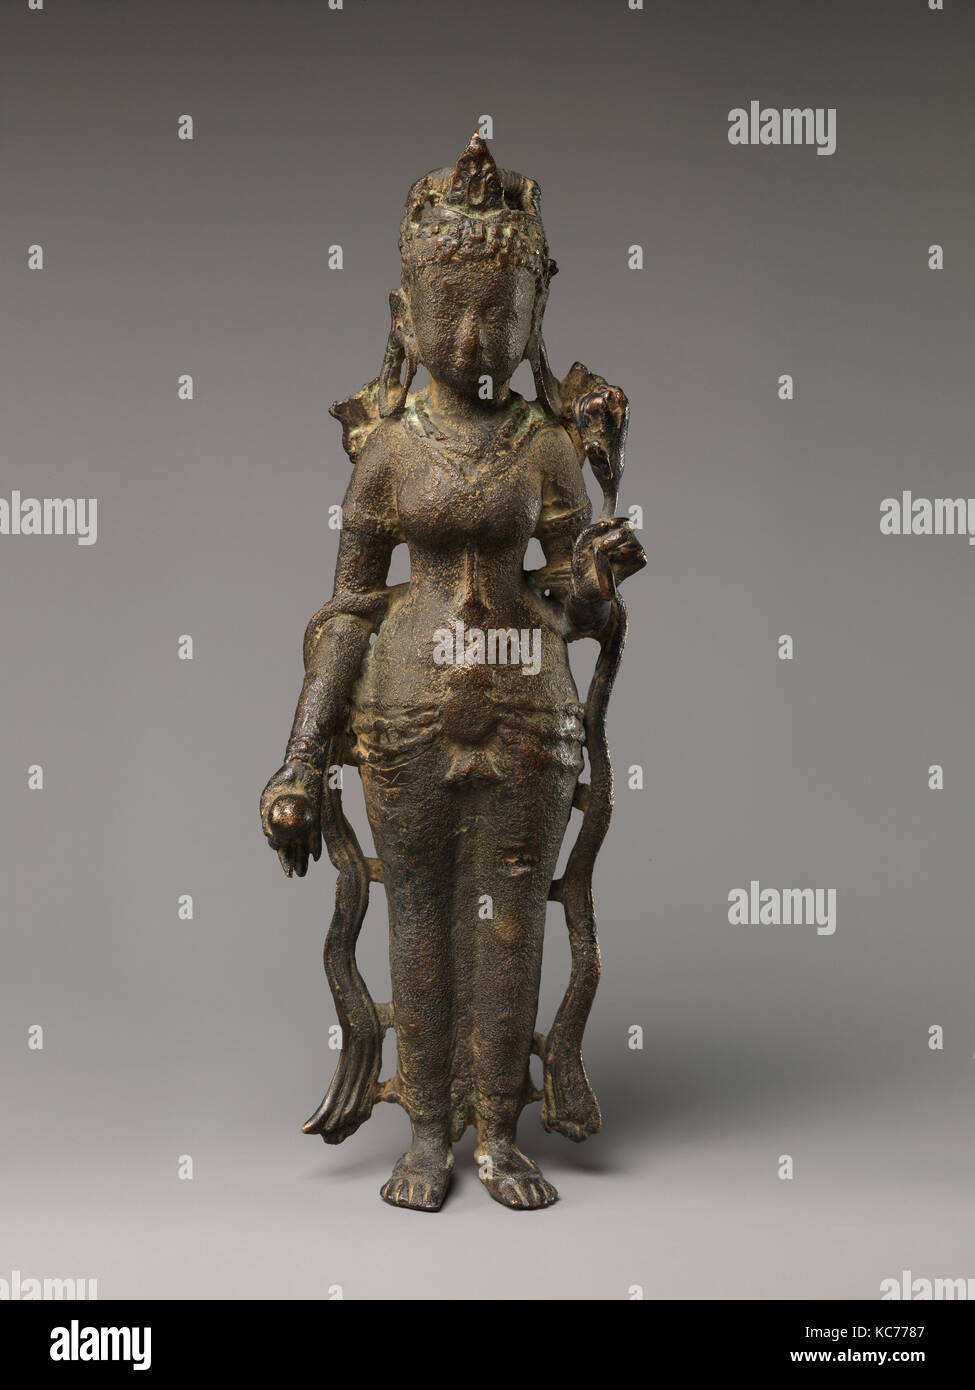 Tara, ca. 7th century, North India (possibly Uttar Pradesh), Copper alloy, H. 12 in. (30.5 cm), Sculpture, This - Stock Image